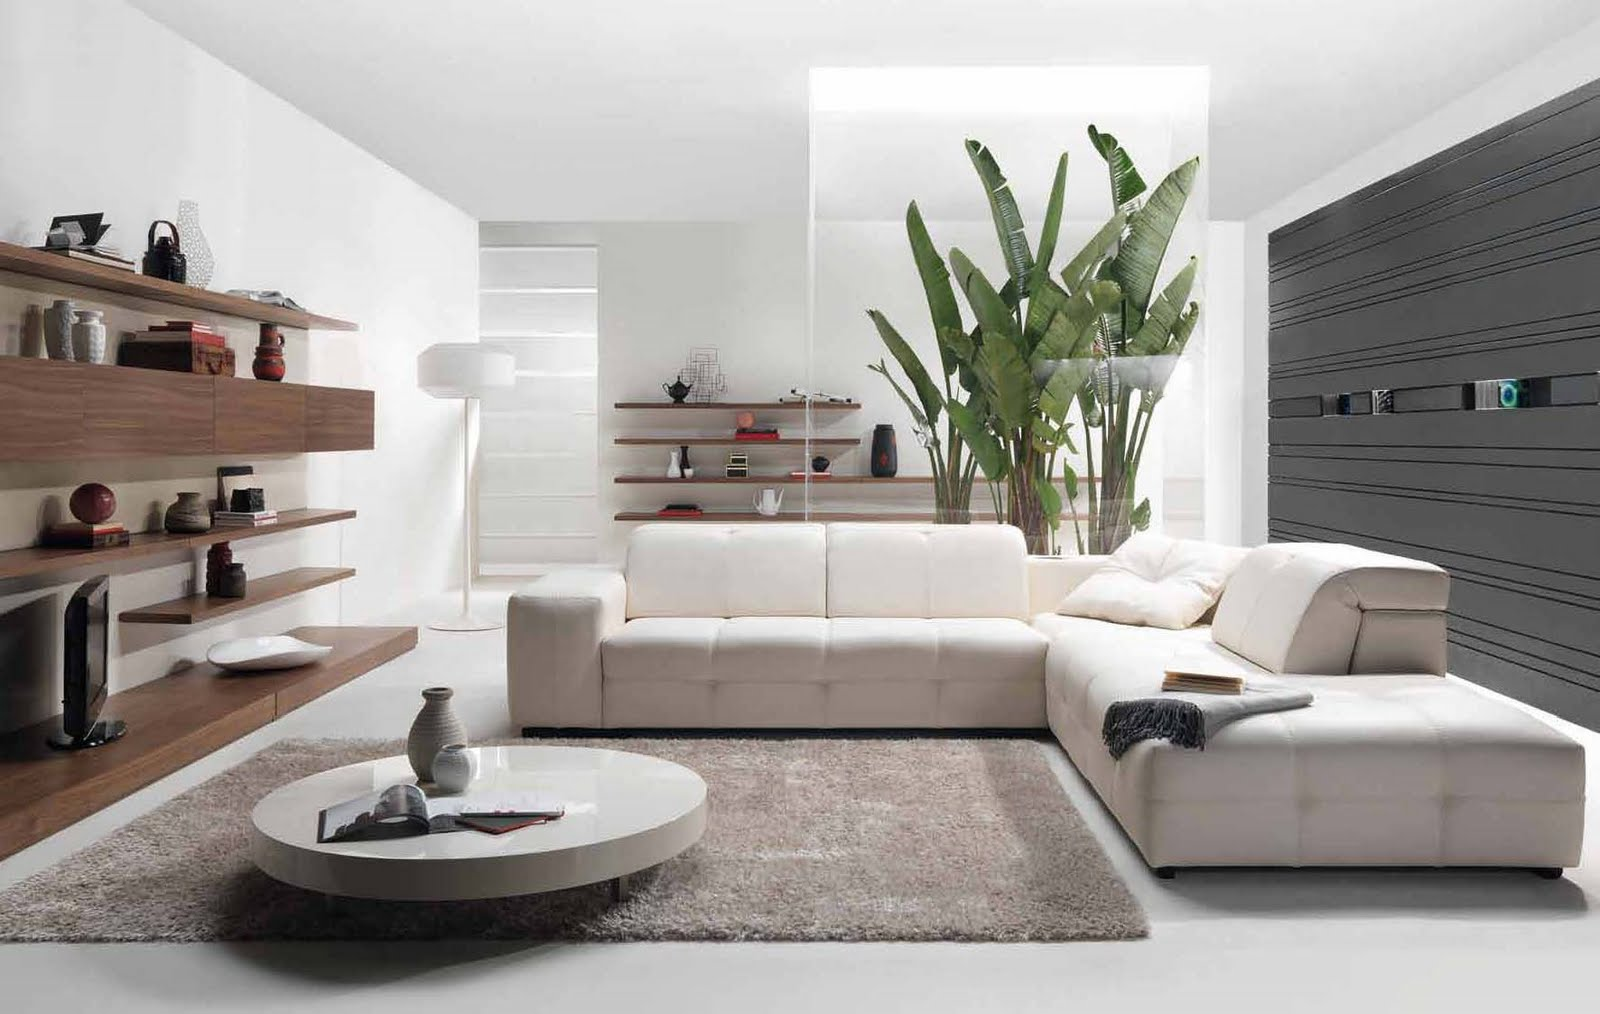 Future house design modern living room interior design for Modern home decor living room